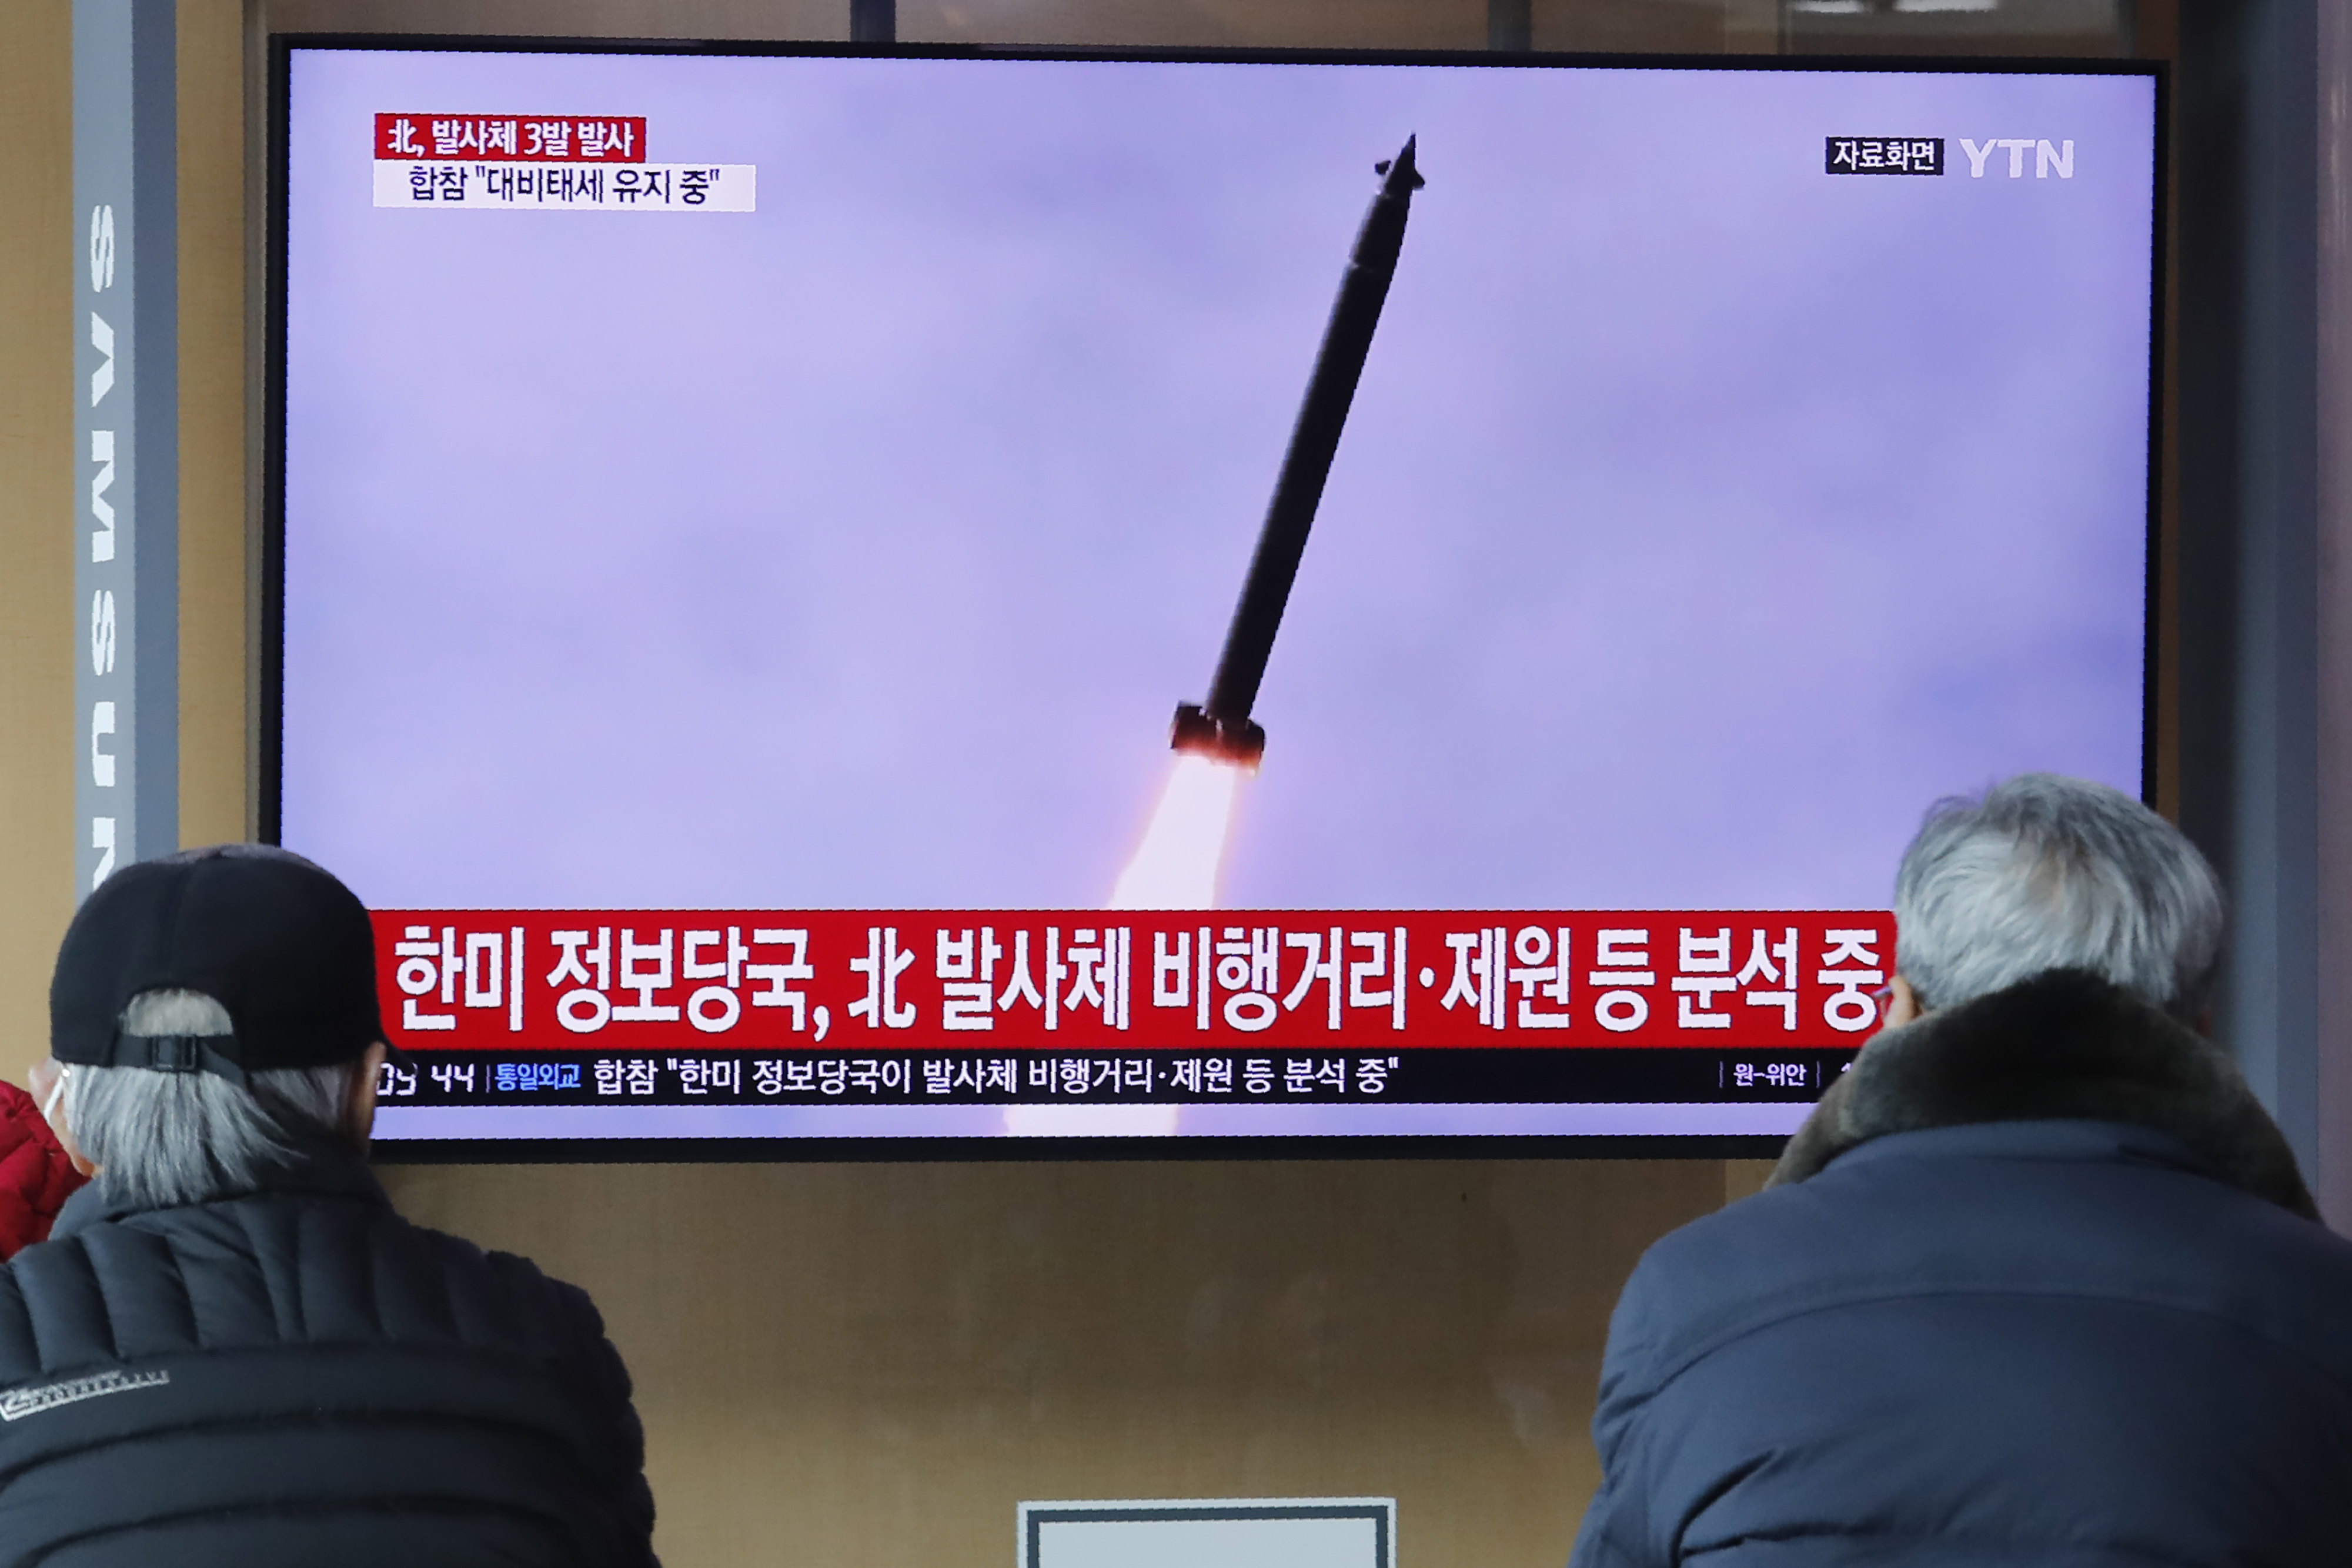 People watch a TV showing a file image of an unspecified North Korean missile launch during a news program at the Seoul Railway Station in Seoul, South Korea, Monday, March 9, 2020. North Korea fired three unidentified projectiles off its east coast on Monday, South Korea's military said, two days after the North threatened to take  momentous  action to protest outside condemnation over its earlier live-fire exercises. The Korean letters read::  South Korea and U.S. intelligence agency analyze North Korea's projectile.